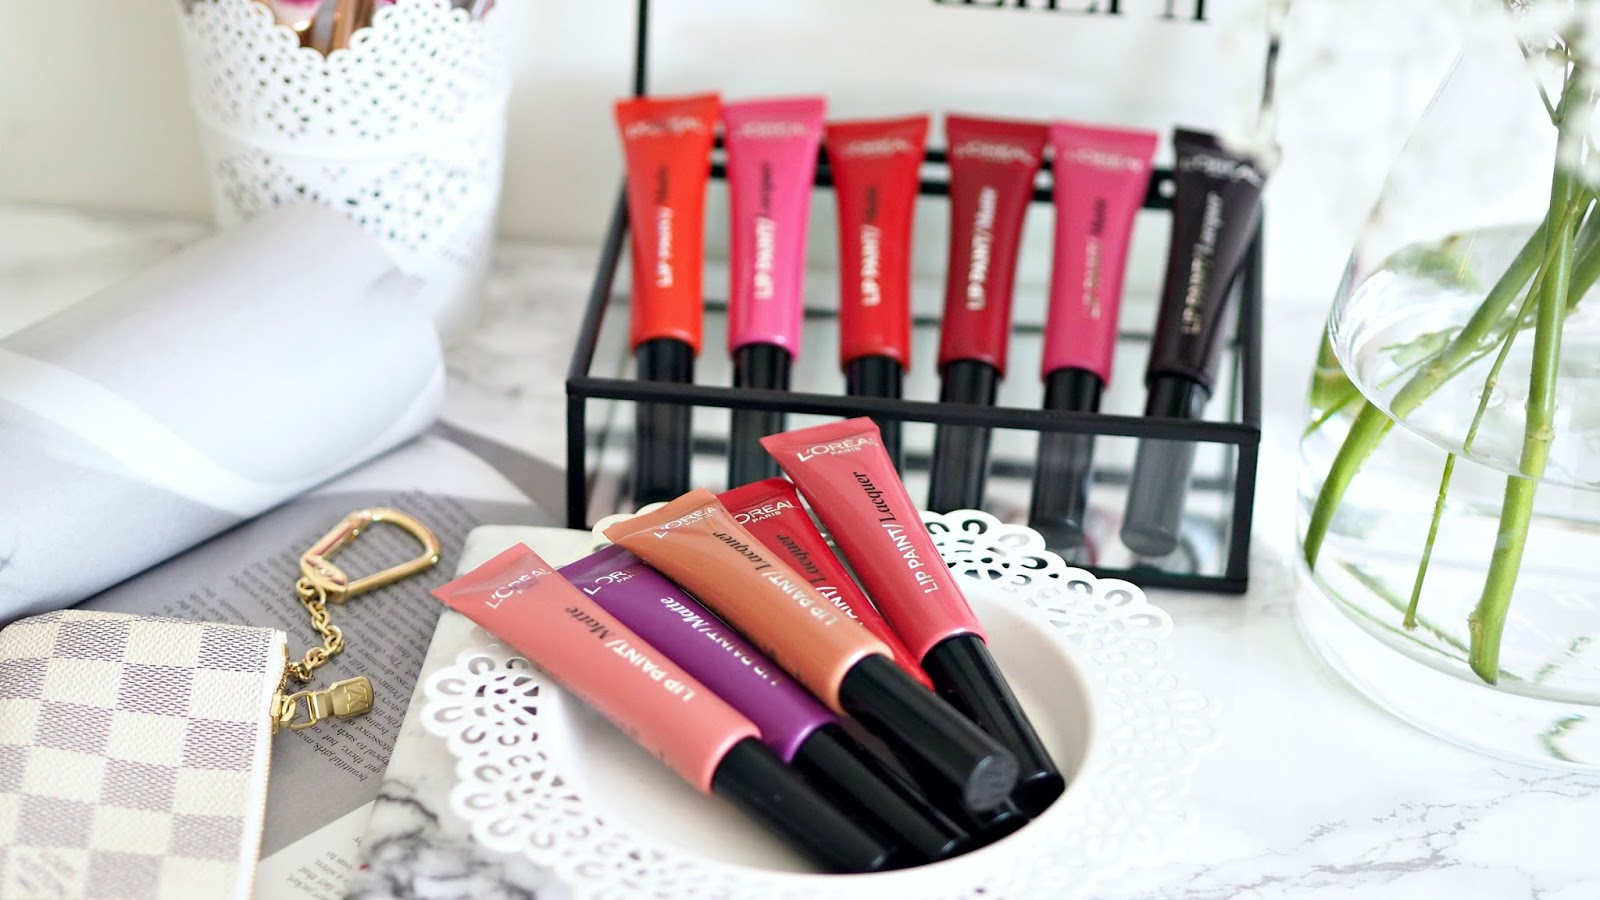 L'Oreal's Infallible Lip Paints review